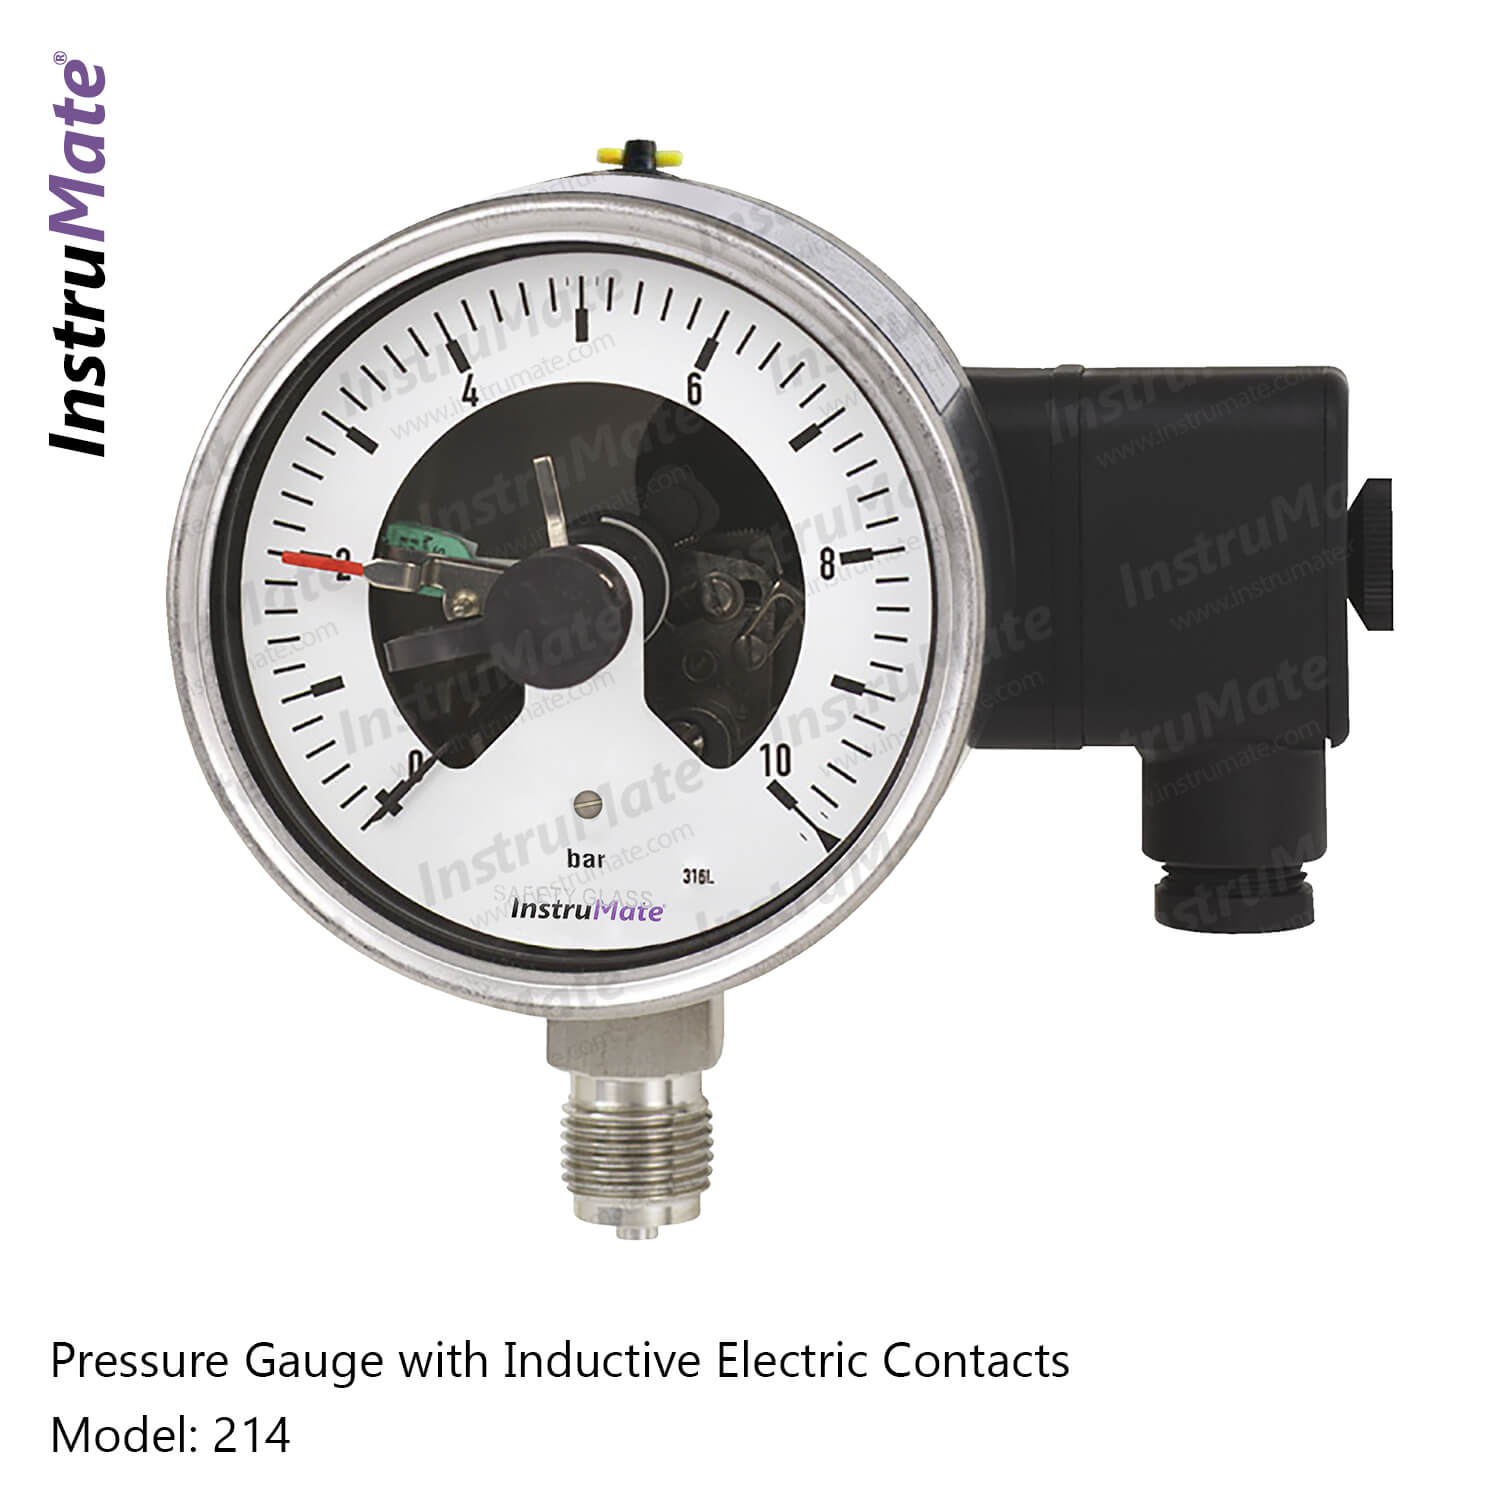 Electric Contact Pressure Gauge - 214 - Instrumate